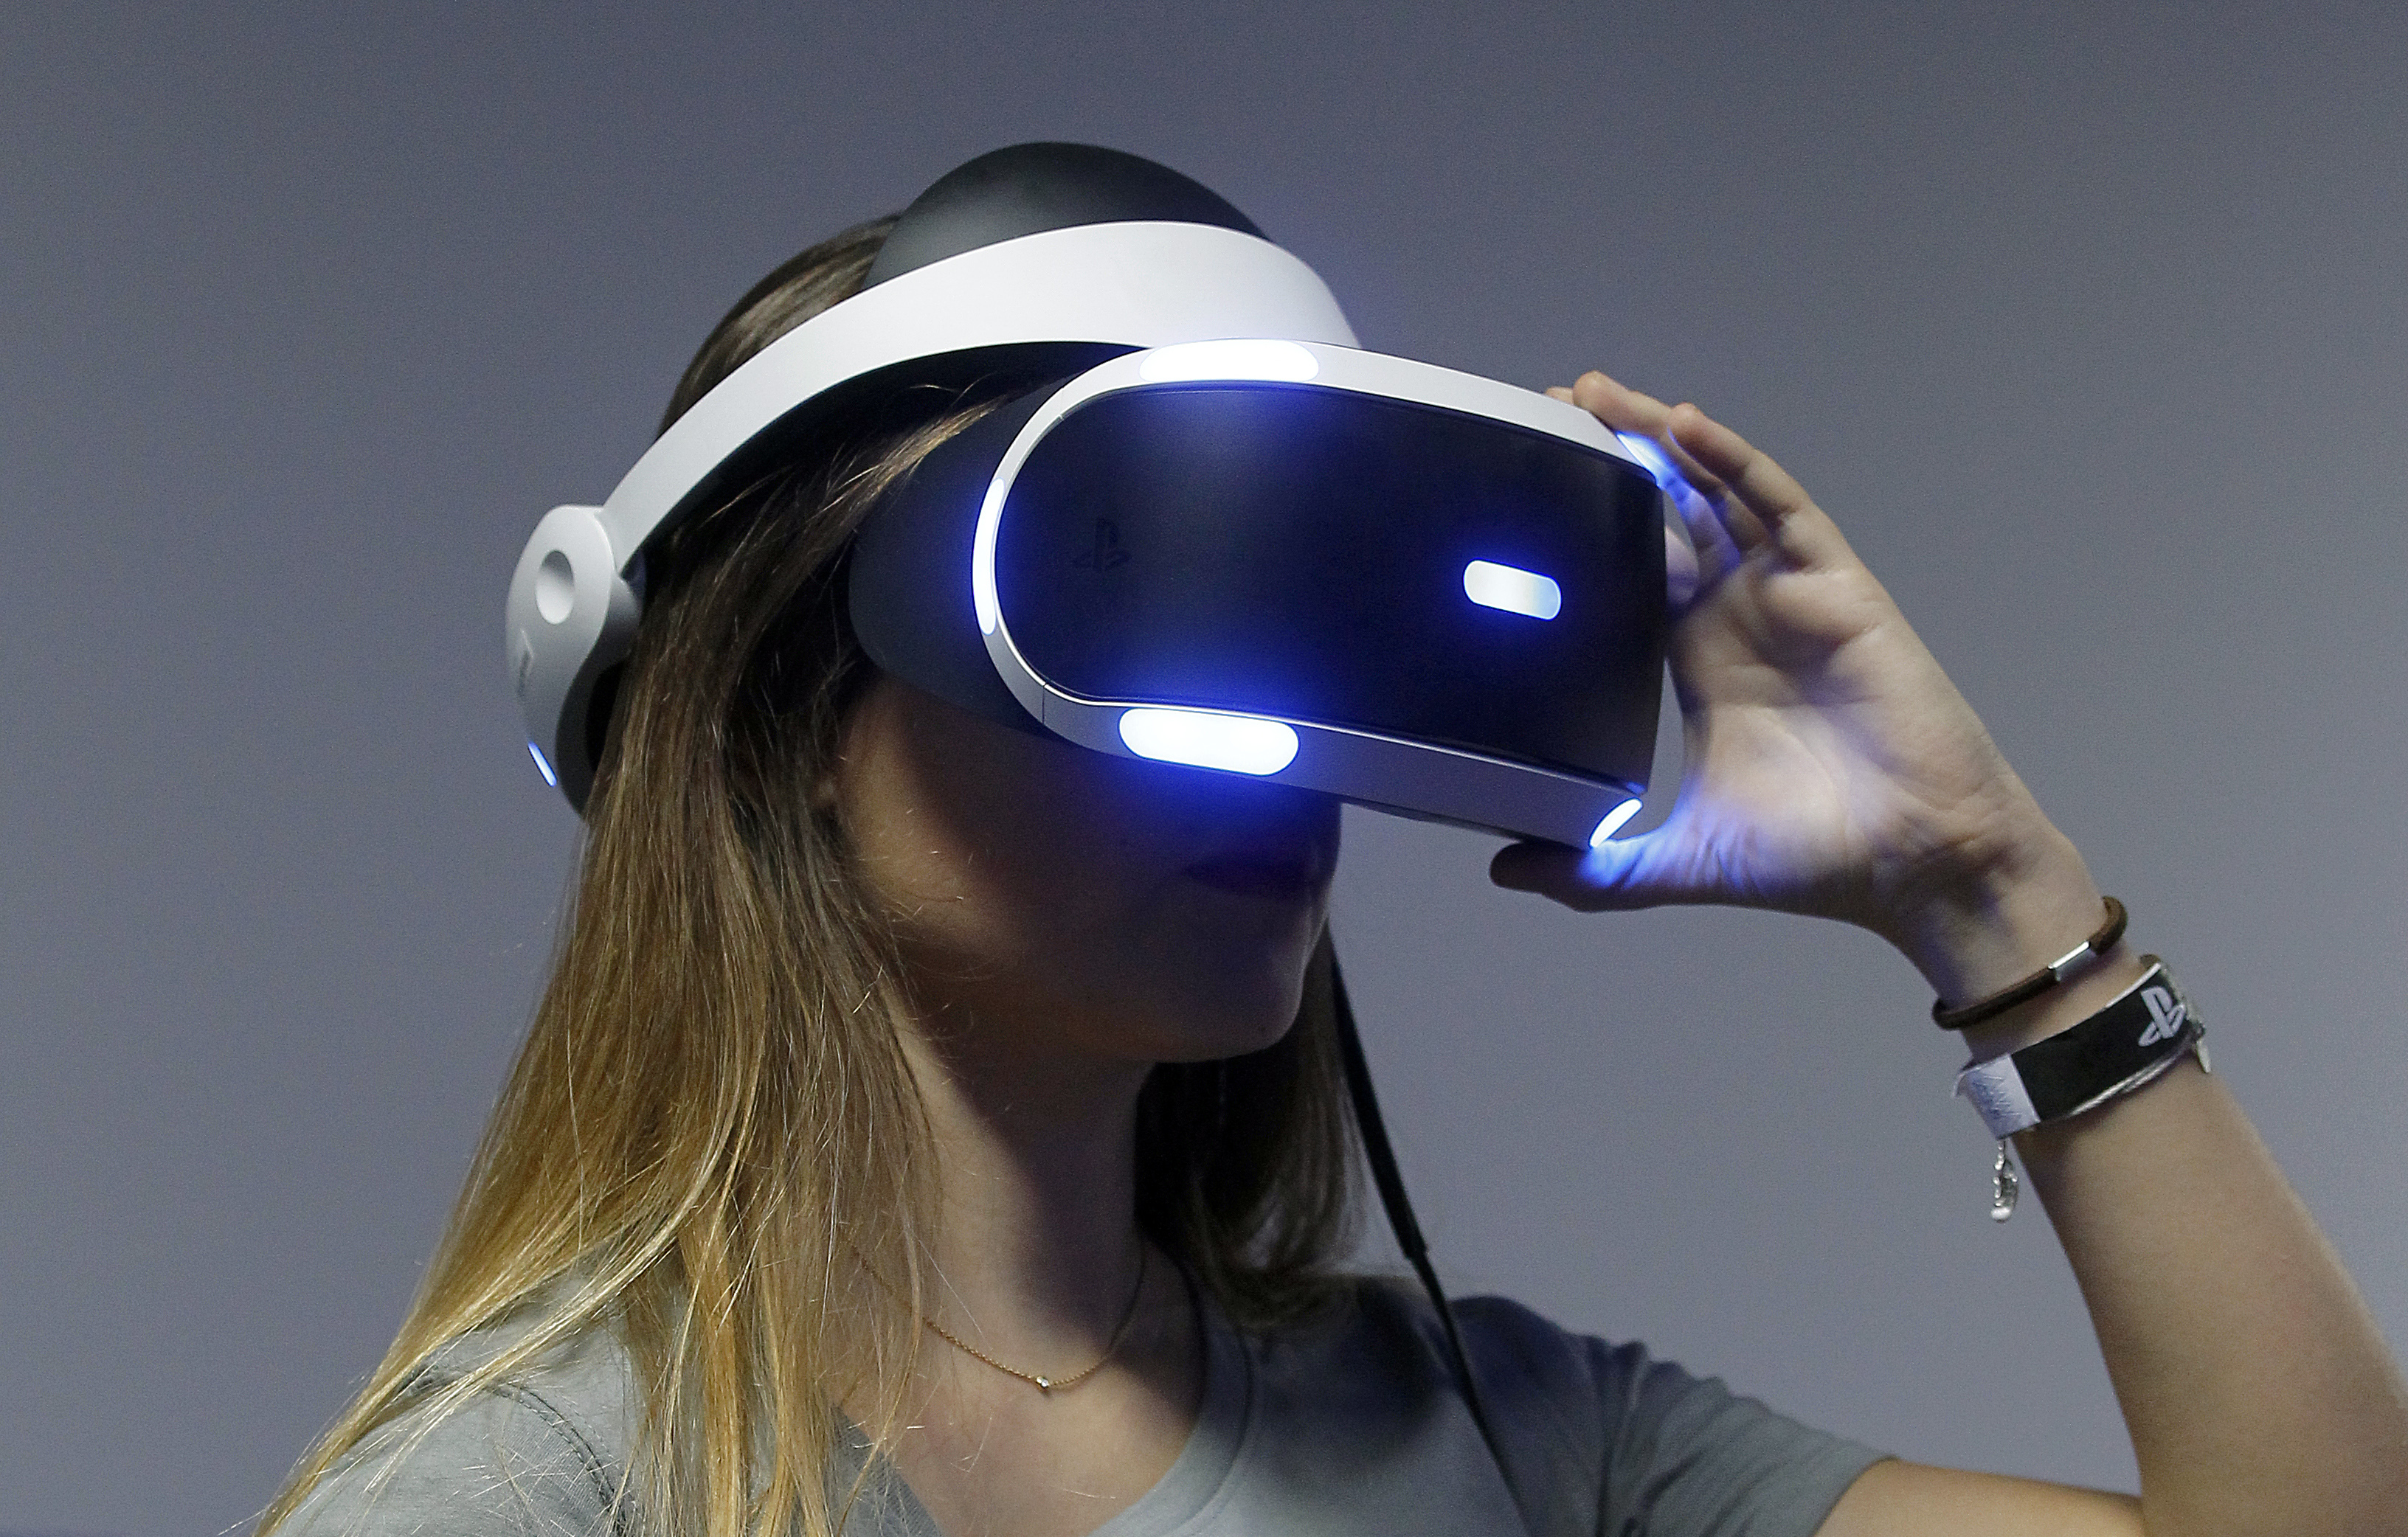 A gamer plays a video game with the virtual reality head-mounted display 'Playstation VR' during the 'Paris Games week' at Parc des Expositions Porte de Versailles on October 28, 2015 in Paris, France.